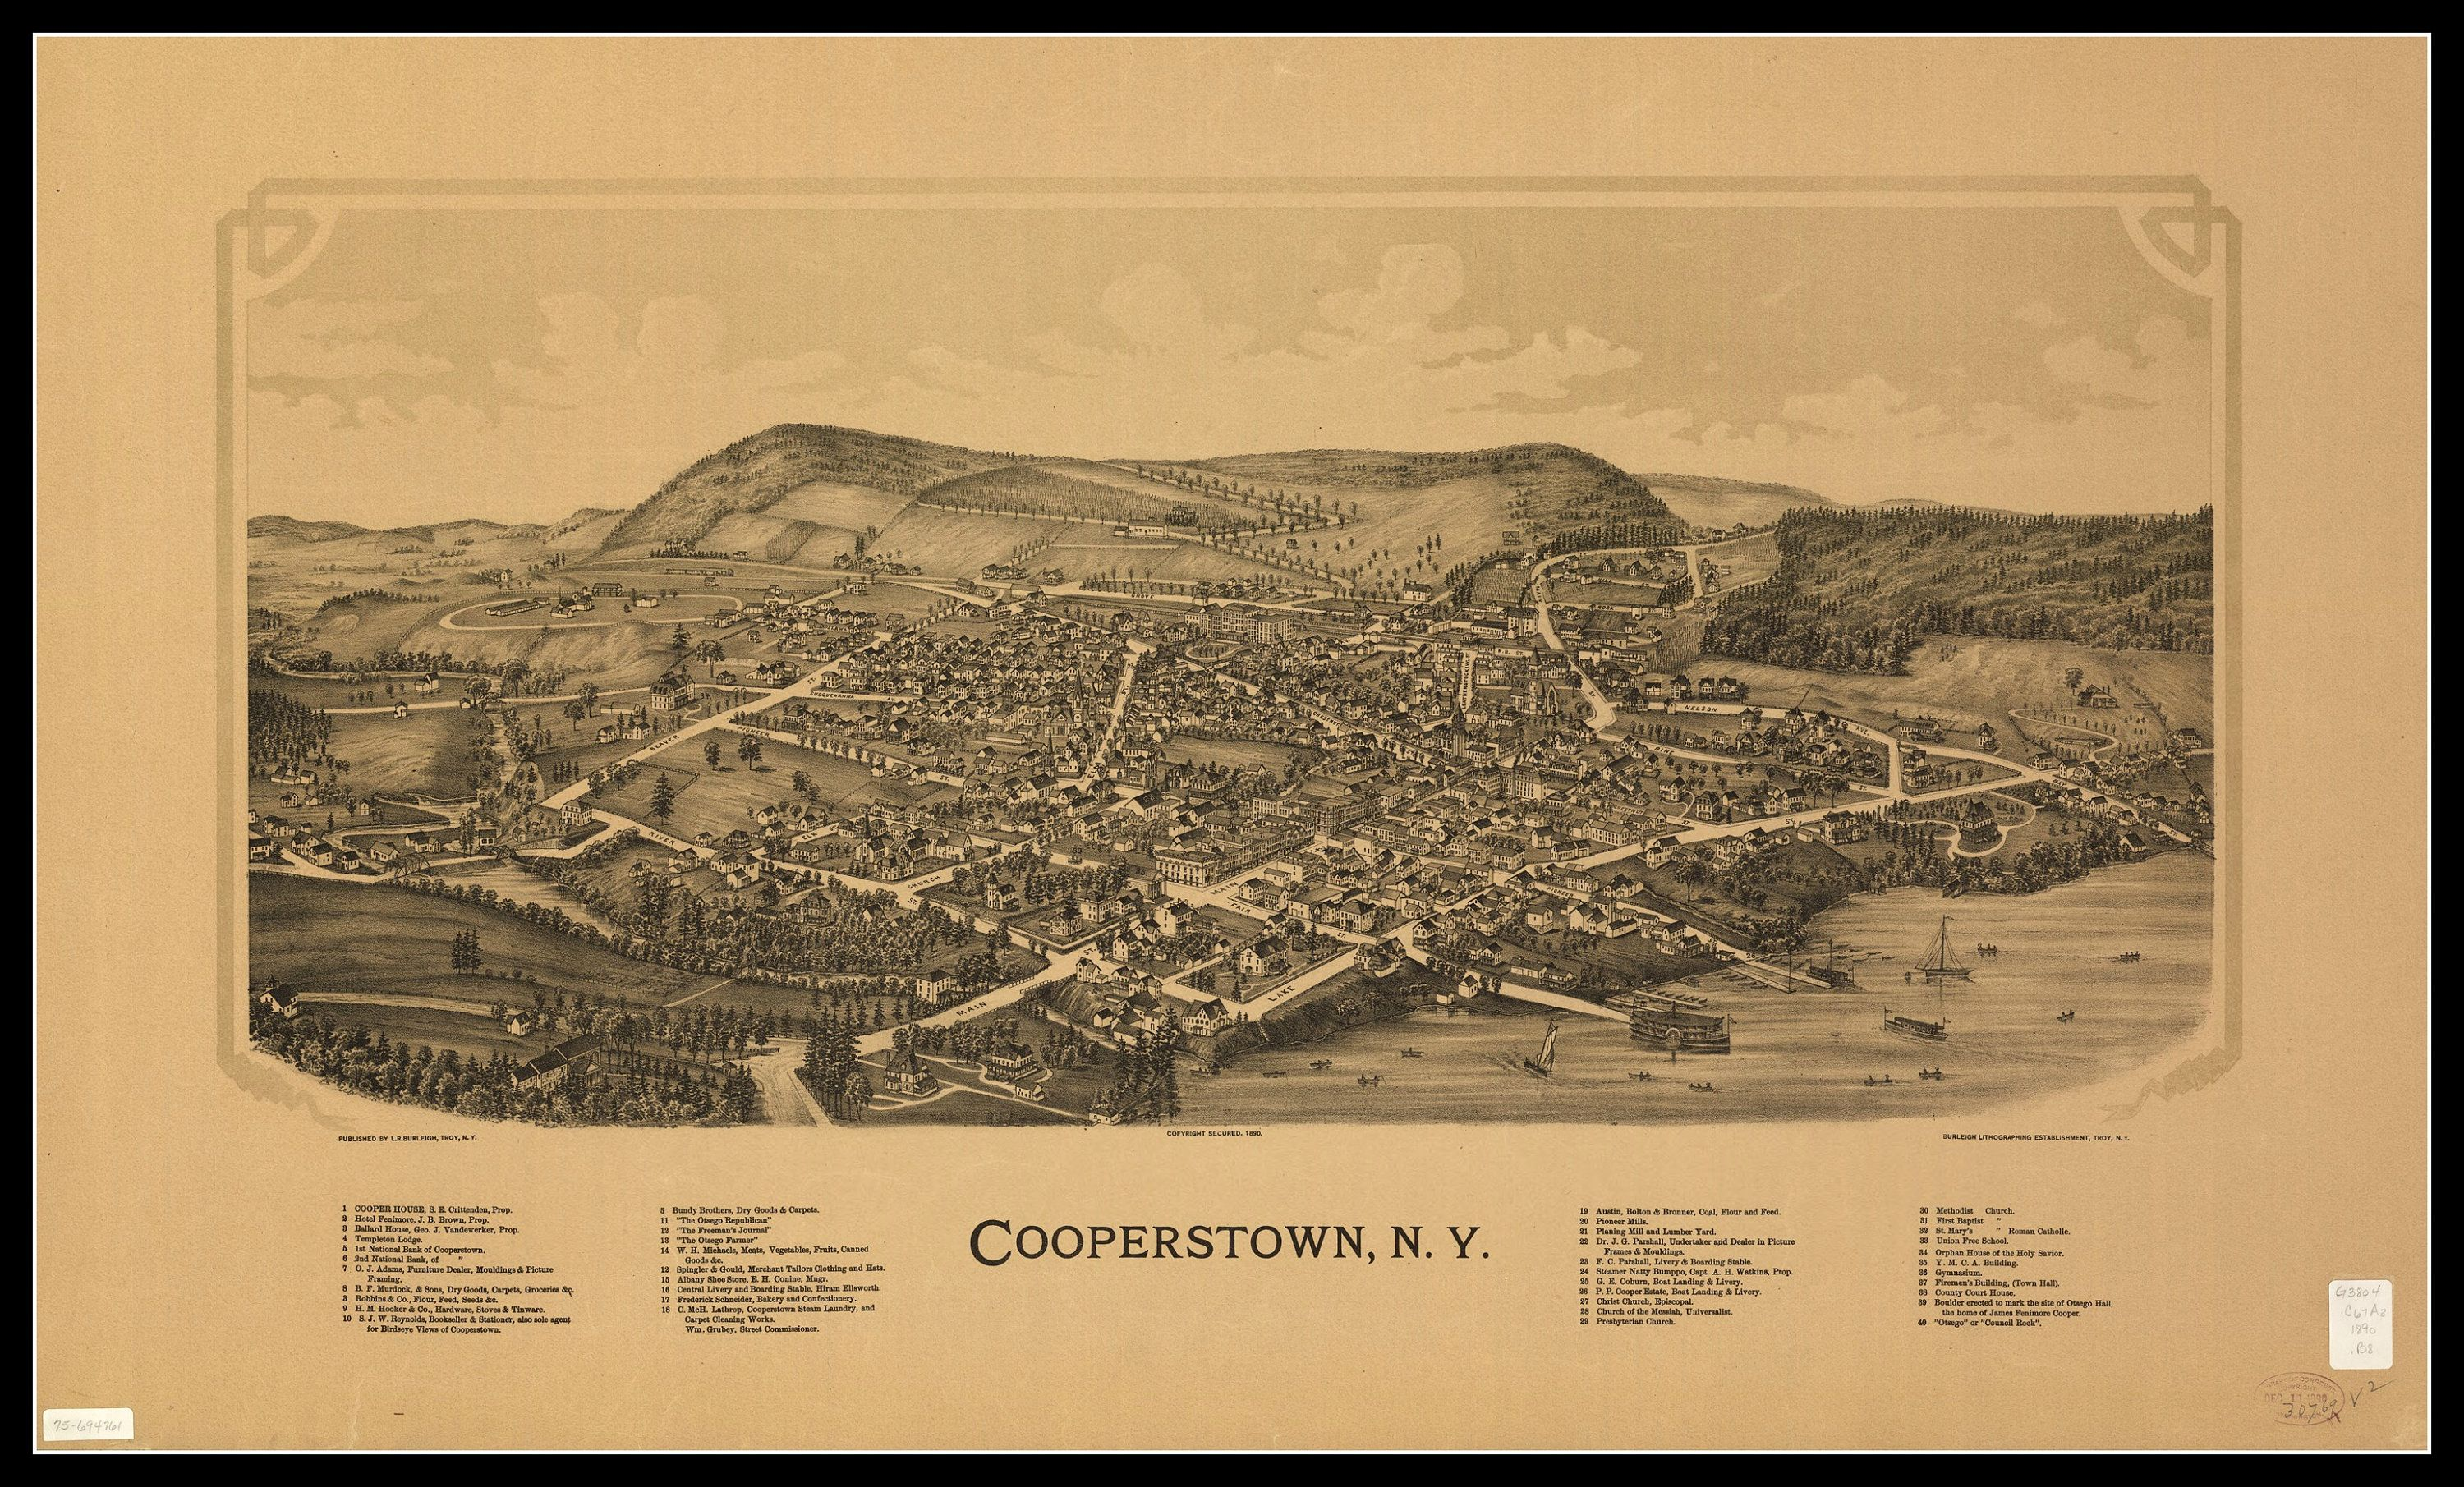 Cooperstown Ny Panoramic Map Vintage Map Vintage Map Art Vintage Map Decor Old Maps Vintage Map Prints Wall H Vintage Map Panoramic Map Vintage Maps Art